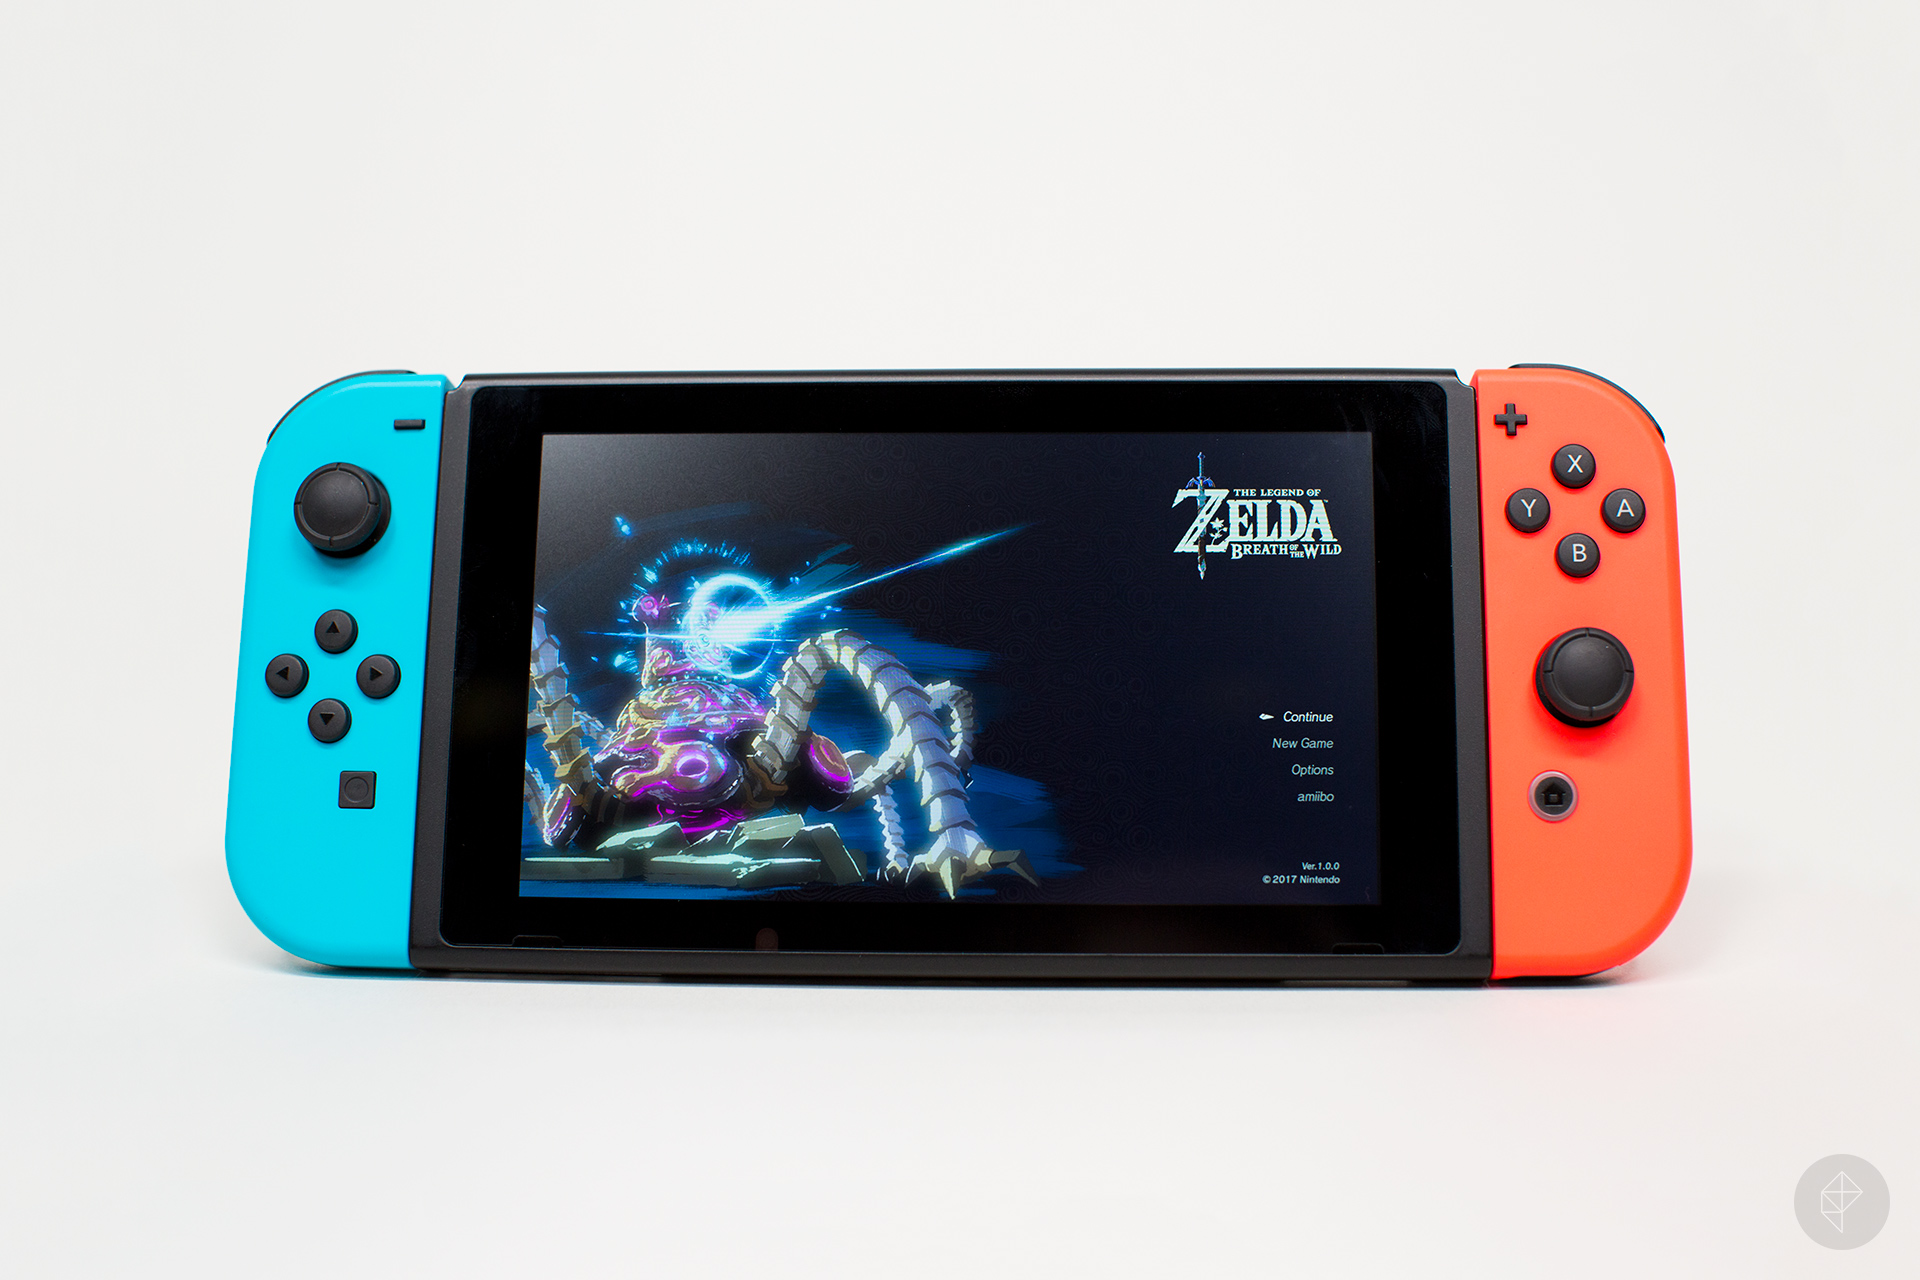 New Nintendo Switch model will have much better battery life